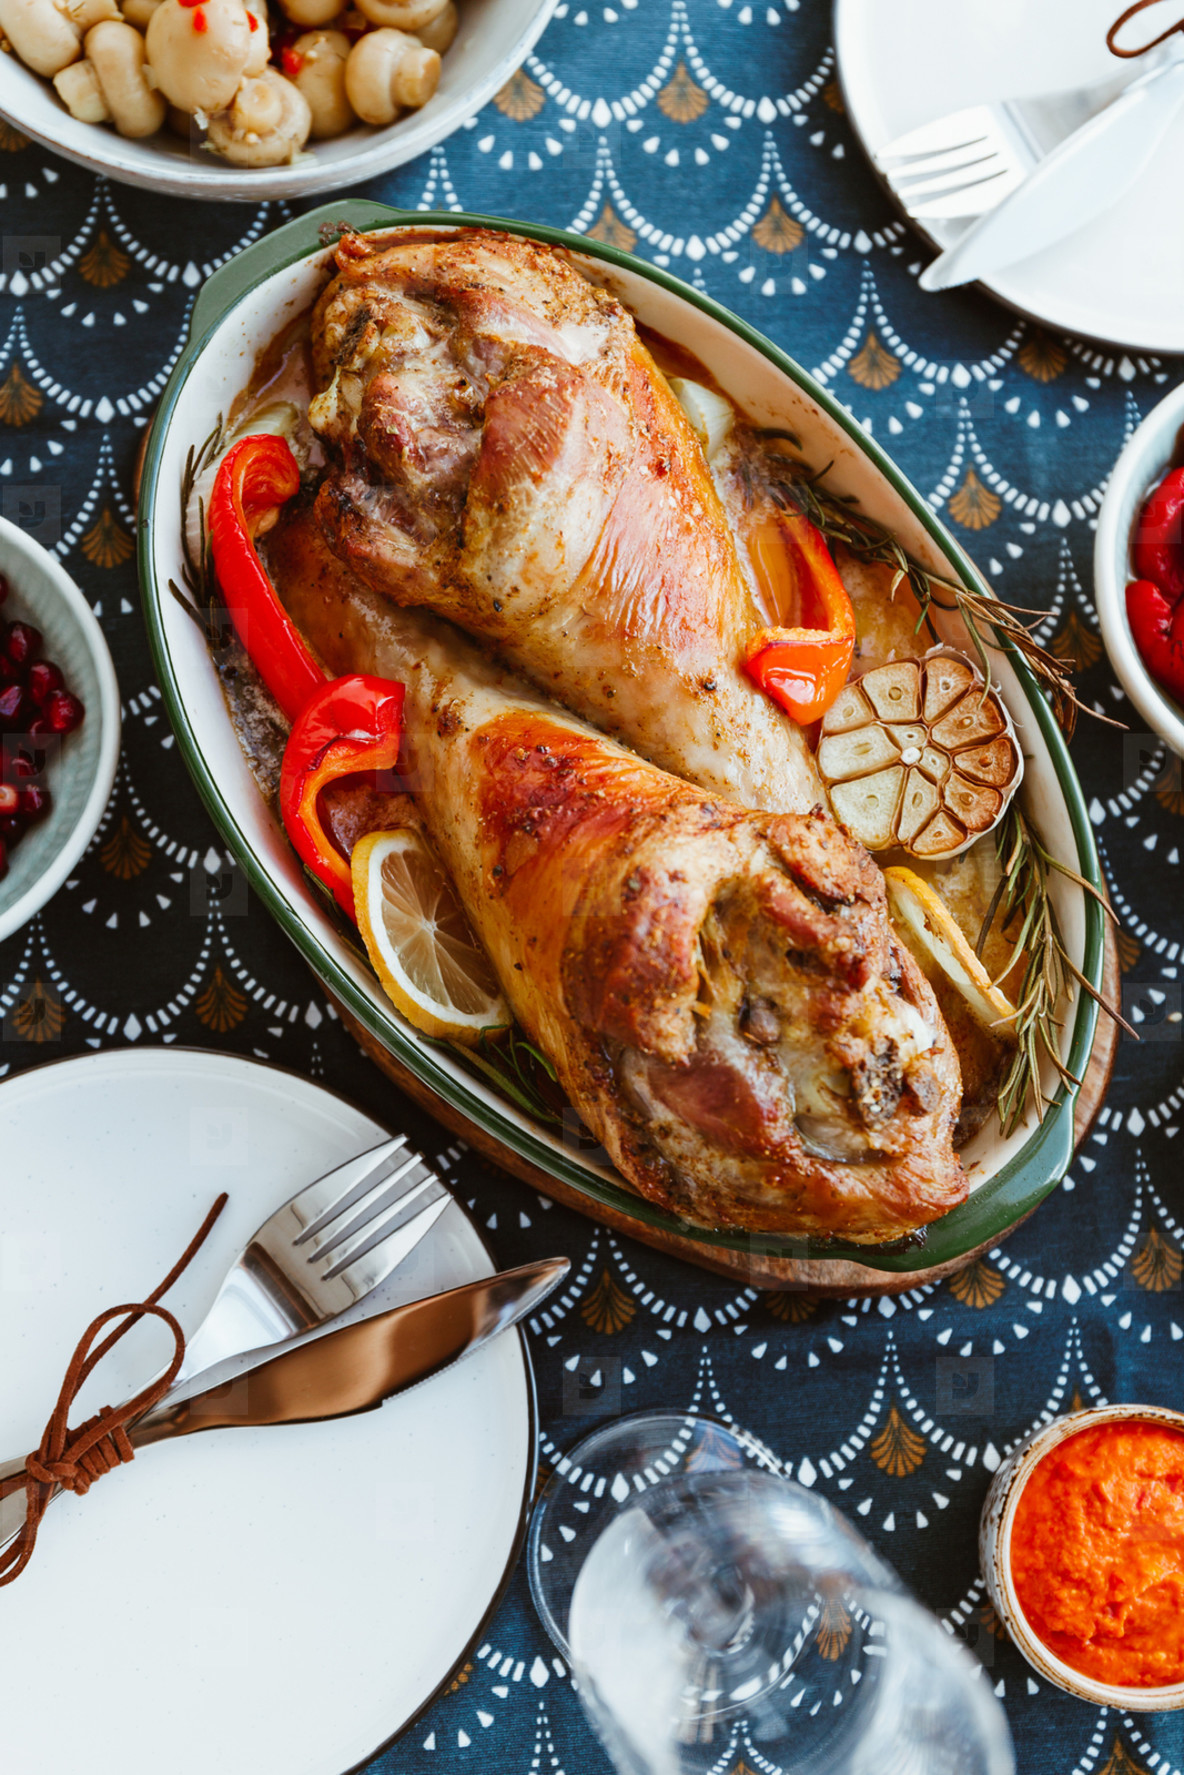 Festive dish for Thanksgiving  roasted turkey legs with vegetables on a table with appetizers  Top view  flat lay